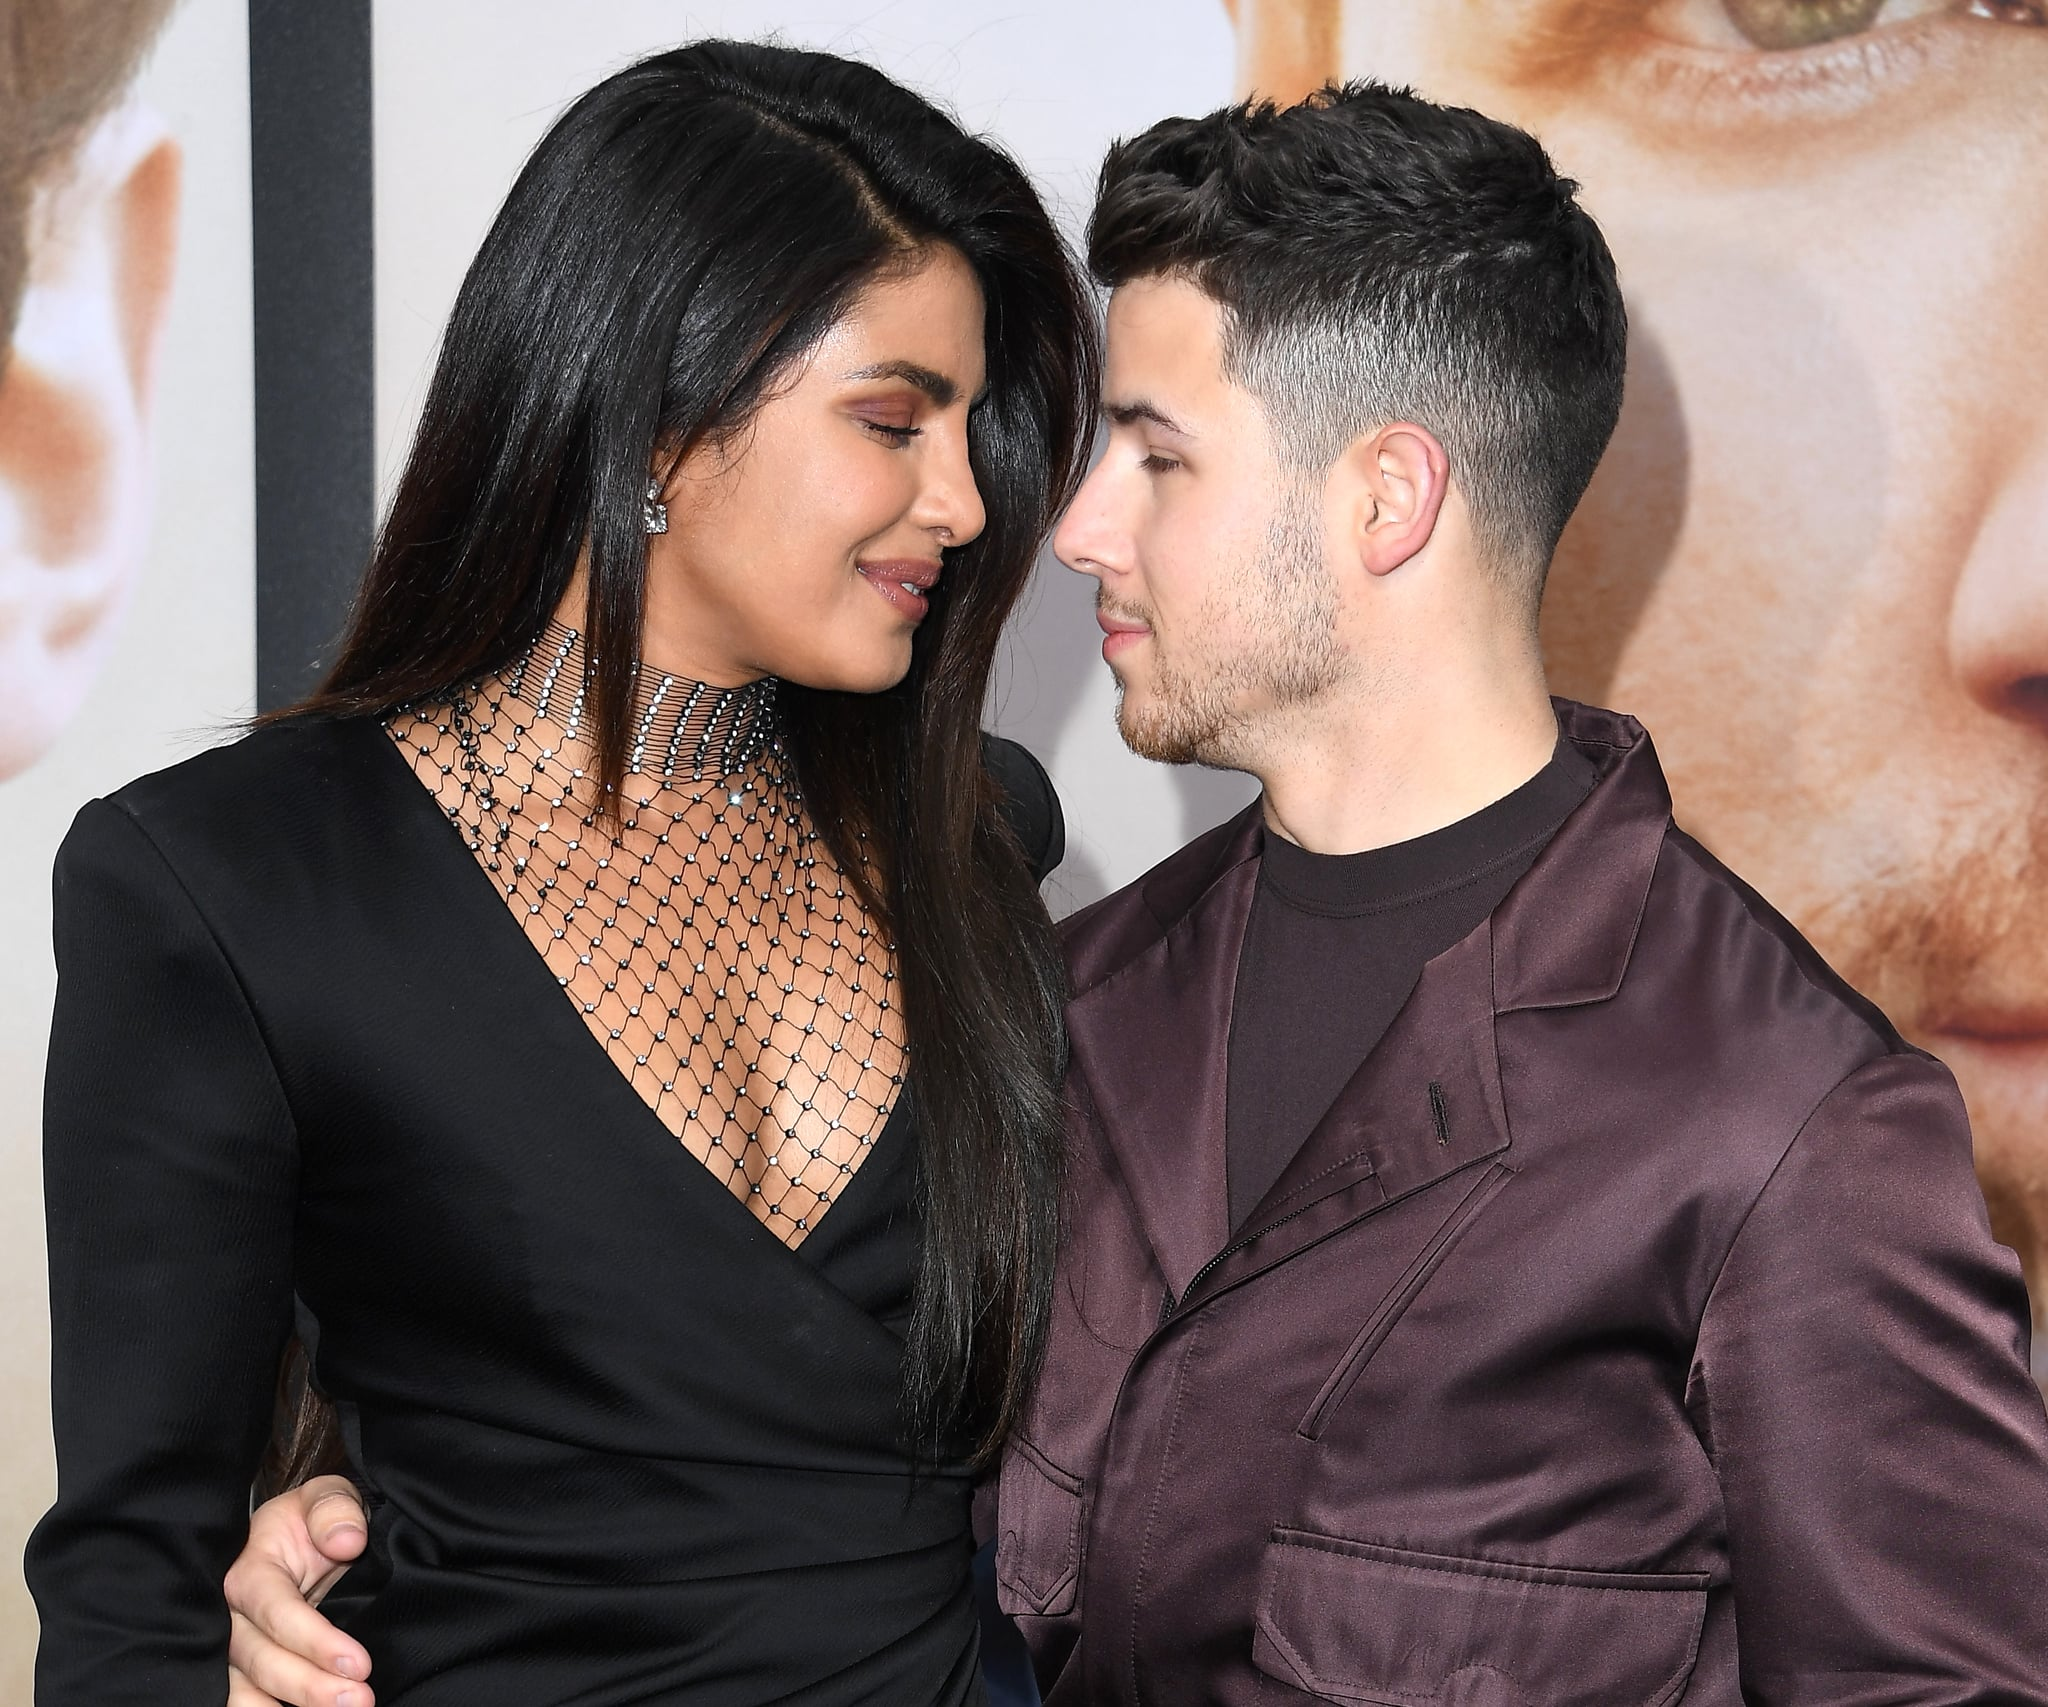 LOS ANGELES, CALIFORNIA - JUNE 03: Priyanka Chopra-Jonas, Nick Jonas arrives at the Premiere Of Amazon Prime Video's